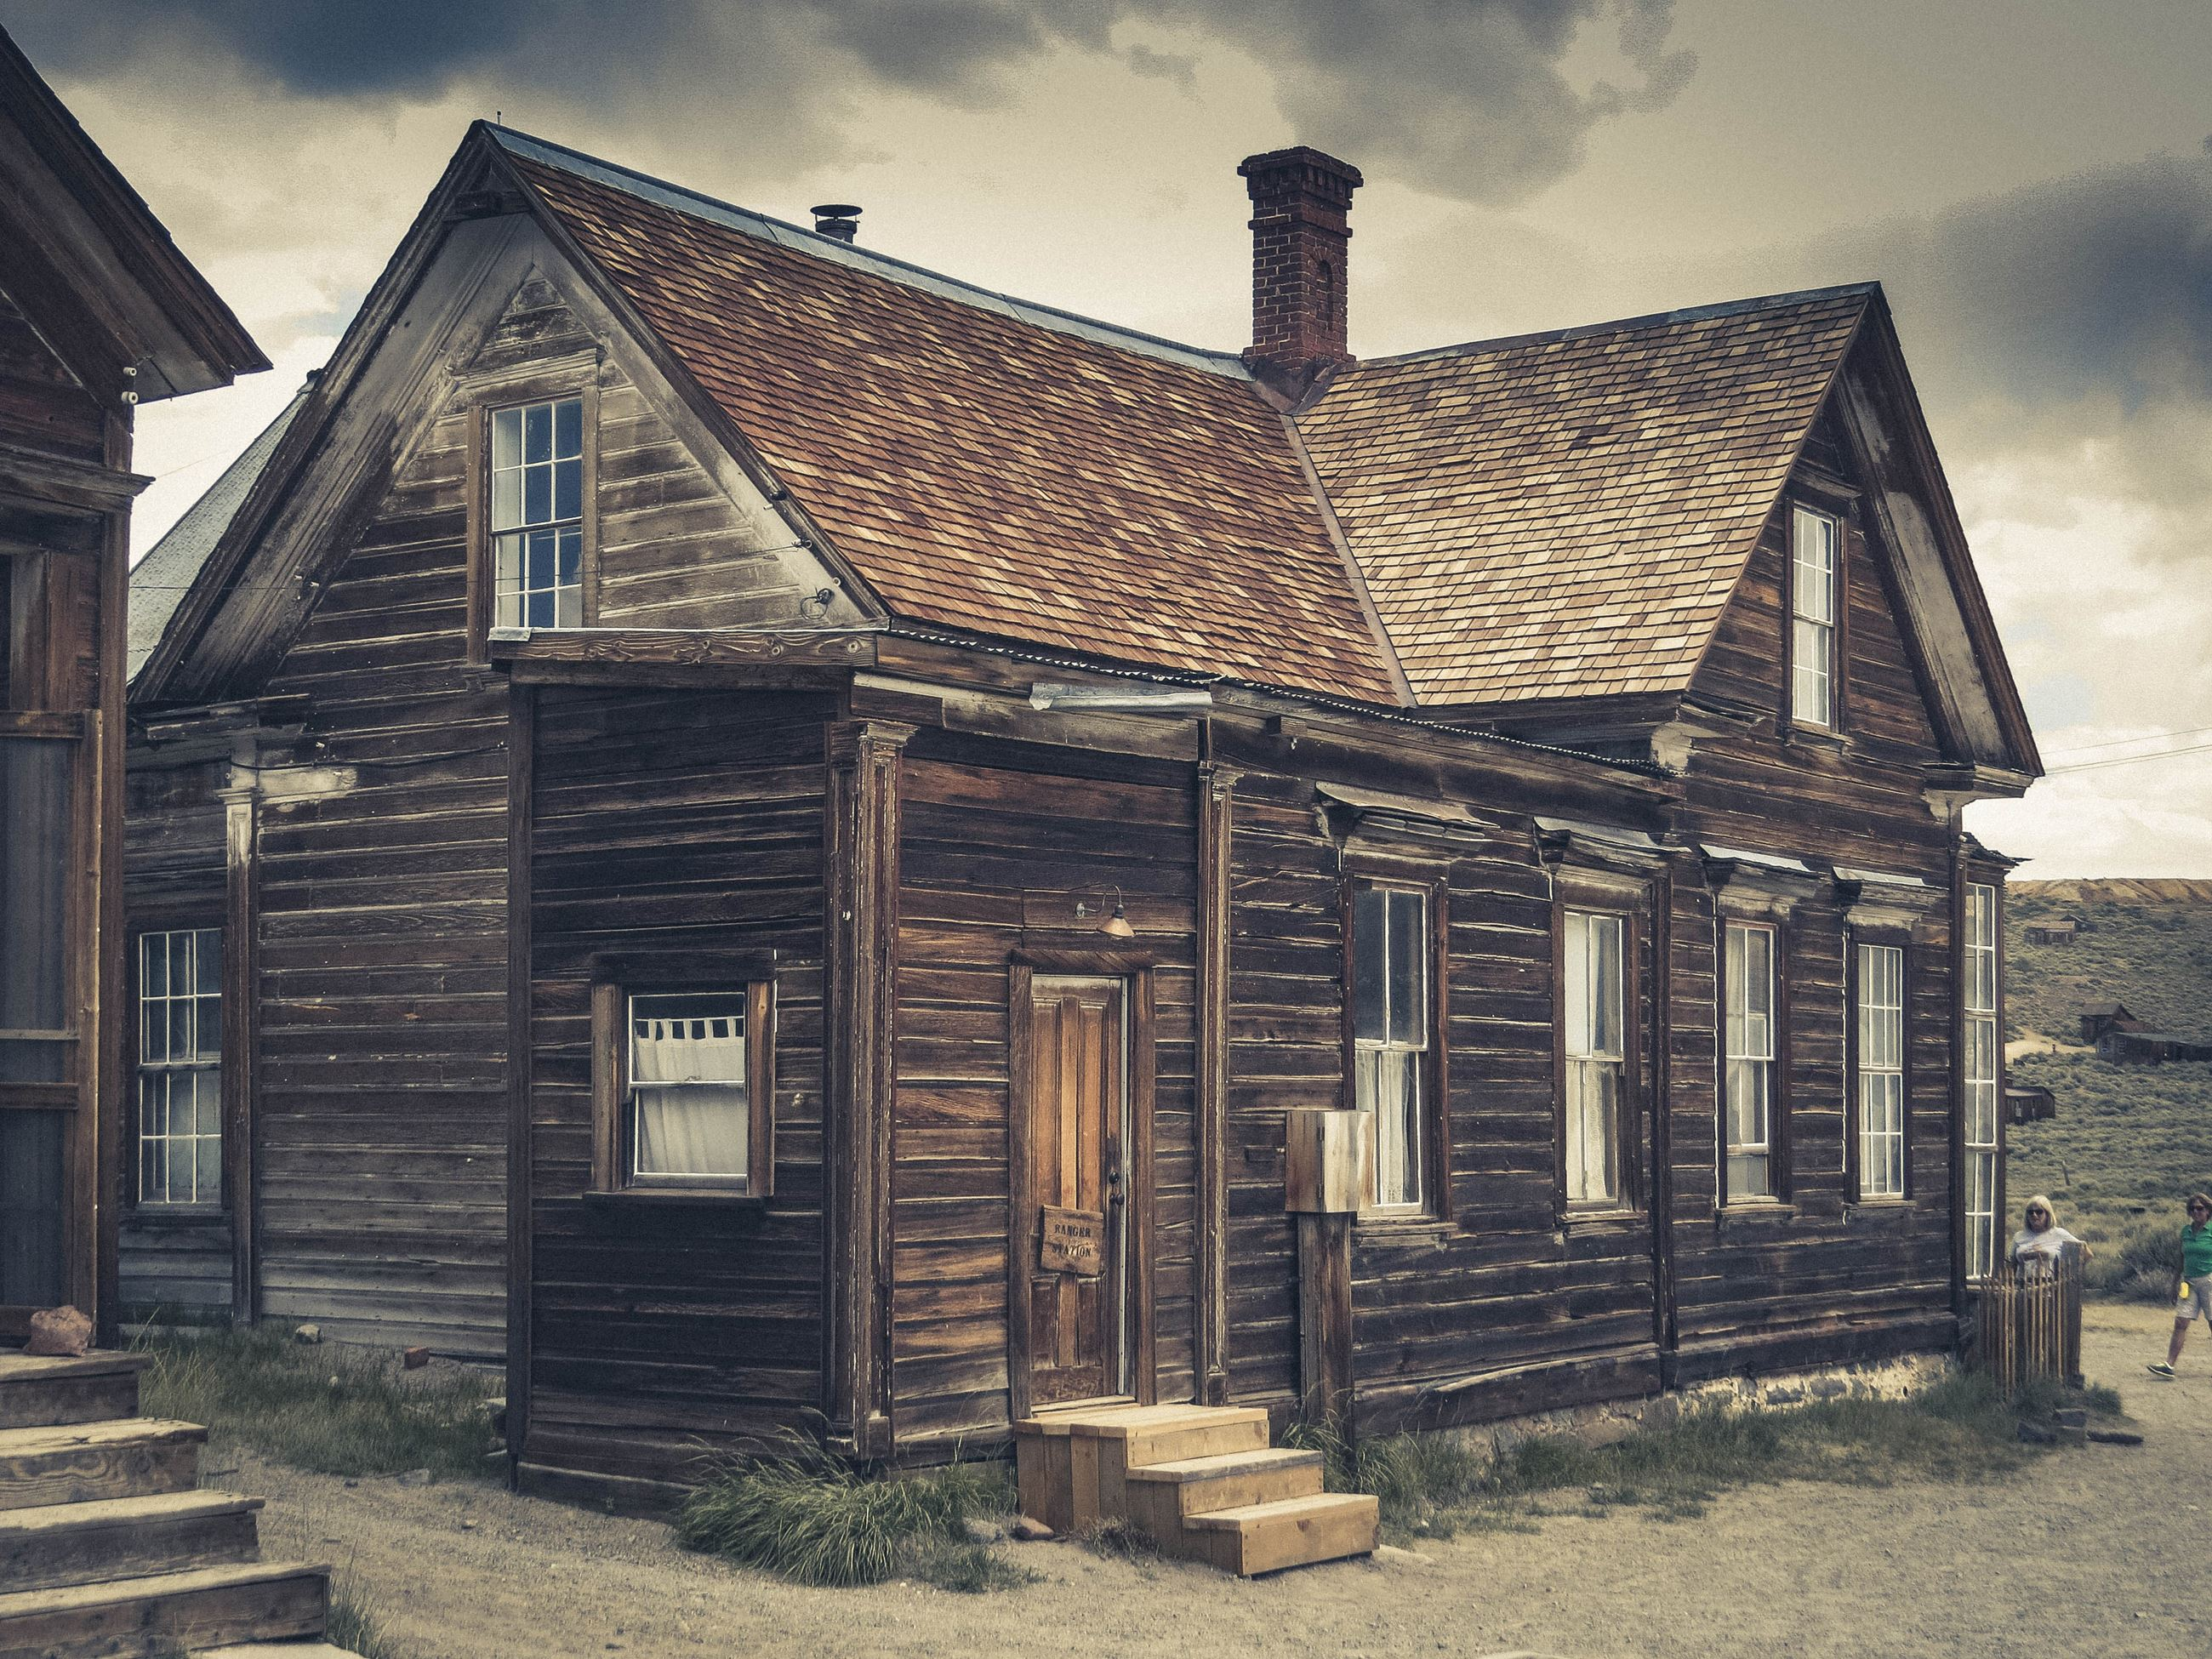 Brown Wooden House (photo by Eric Marty, unsplash)